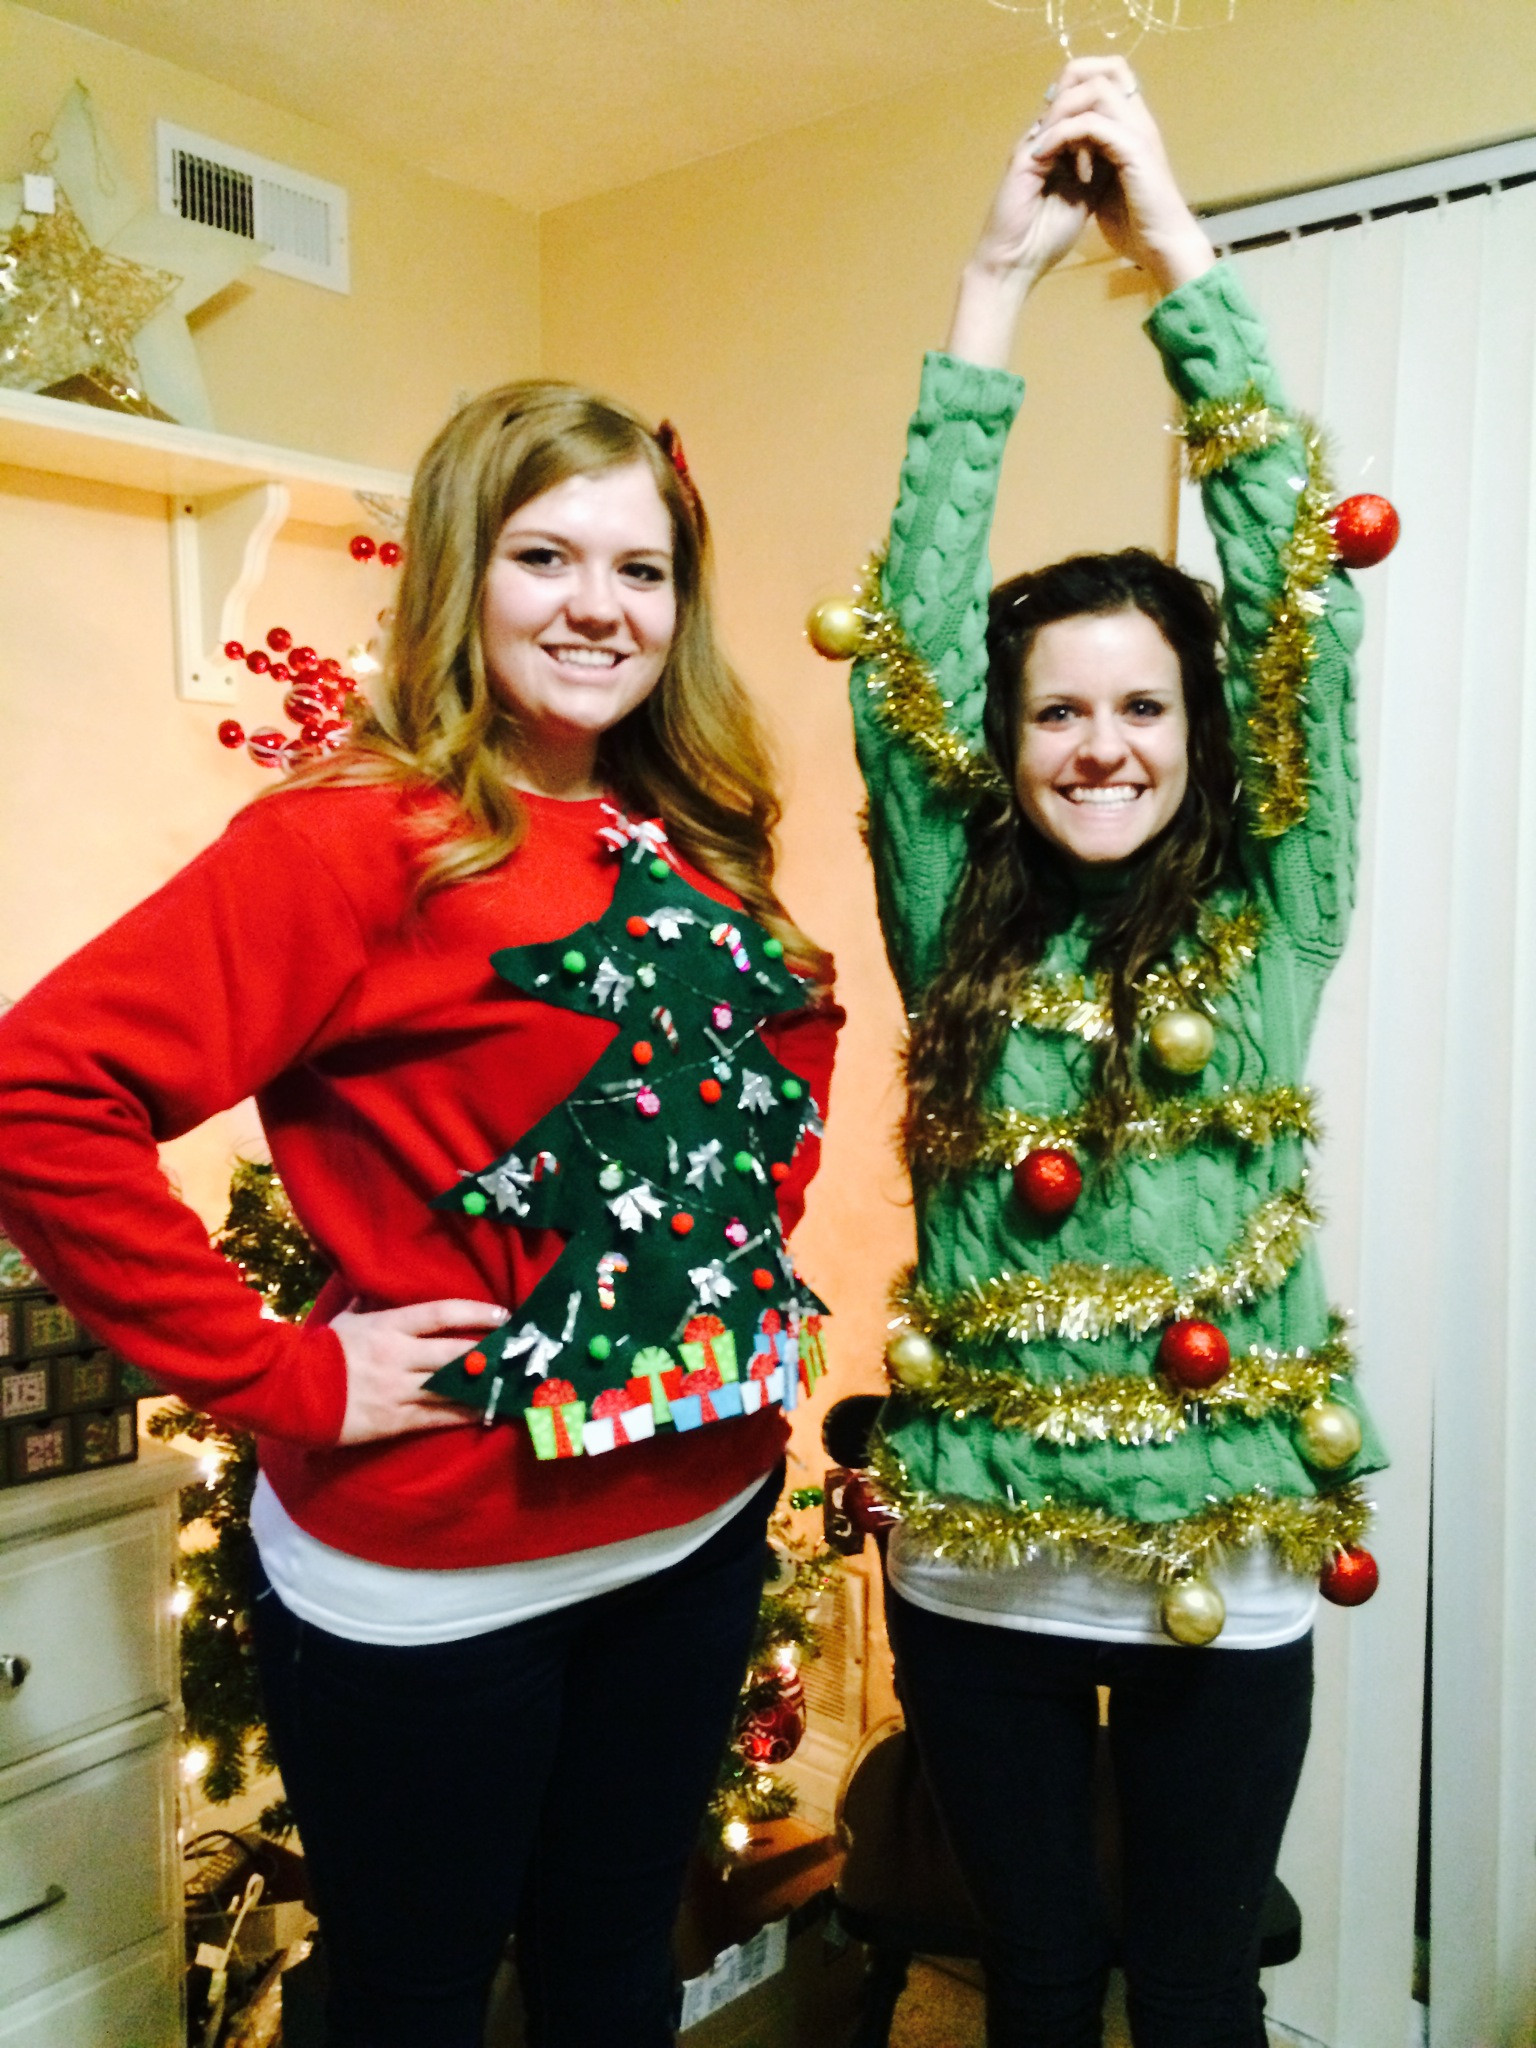 Best ideas about DIY Christmas Tree Sweater . Save or Pin DIY Ugly Sweater Ideas Now.